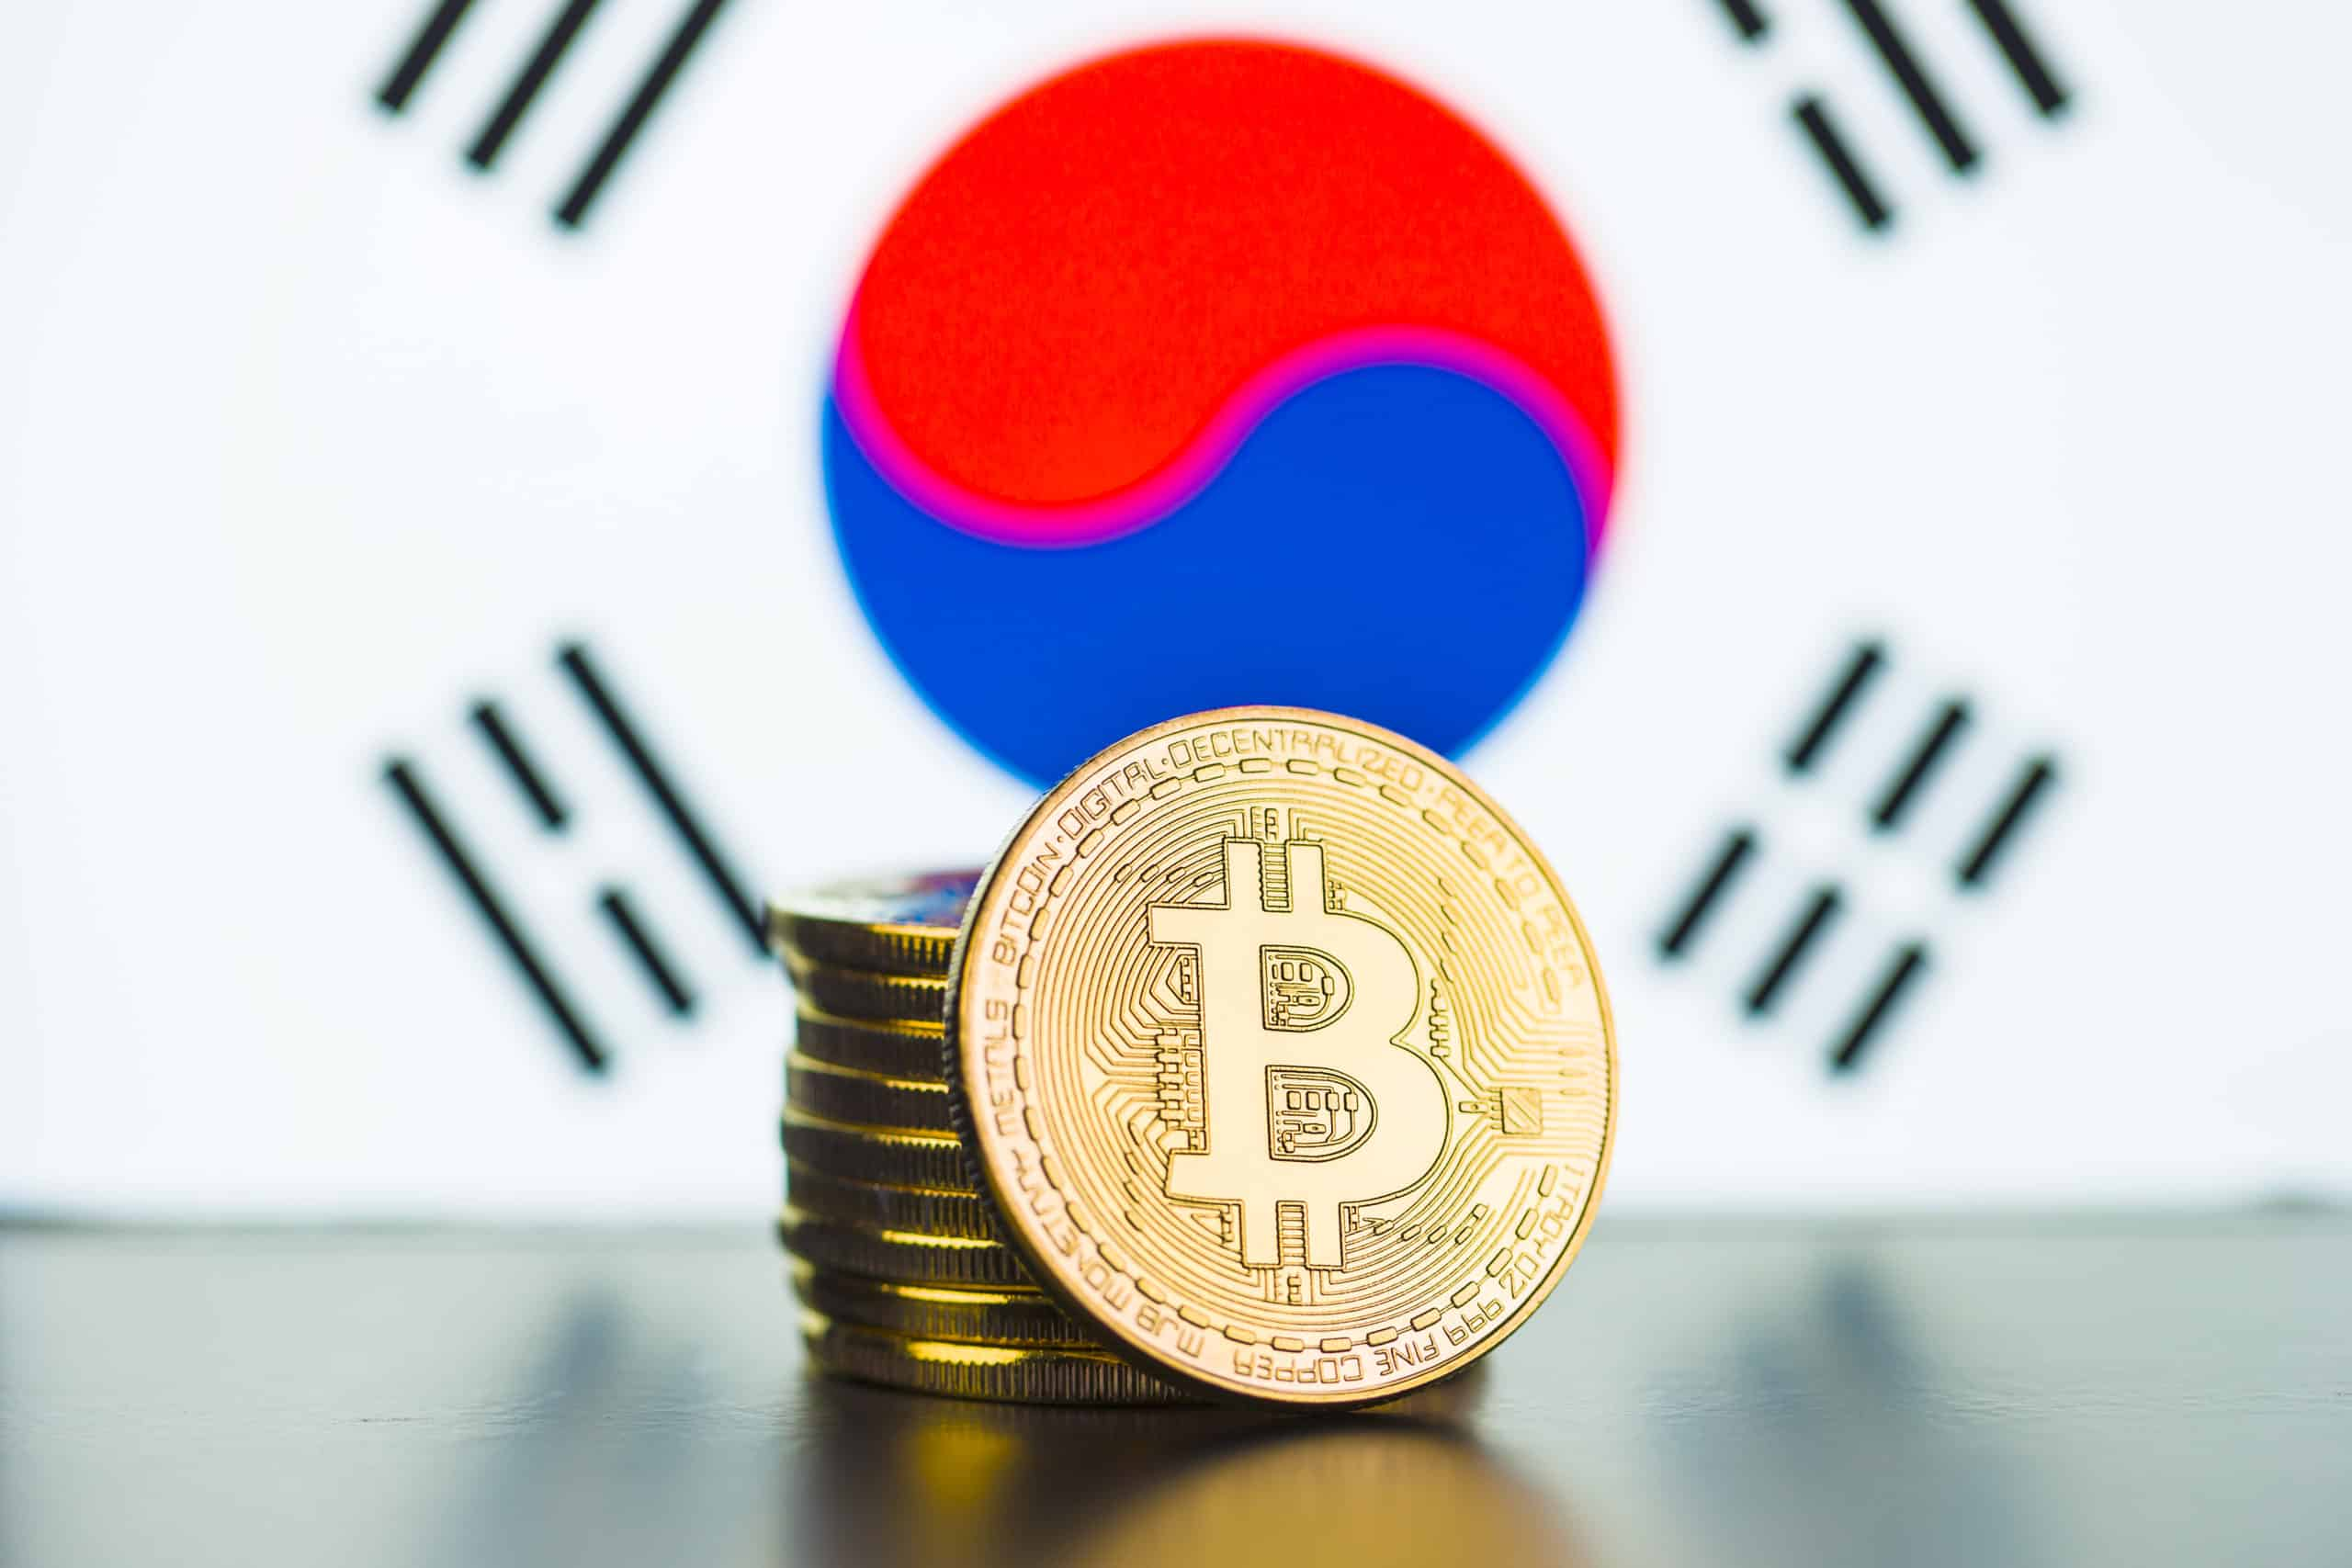 Golden bitcoins and South Korea flag   South Korea's tax law amendment allows authorities to seize crypto from cold wallets